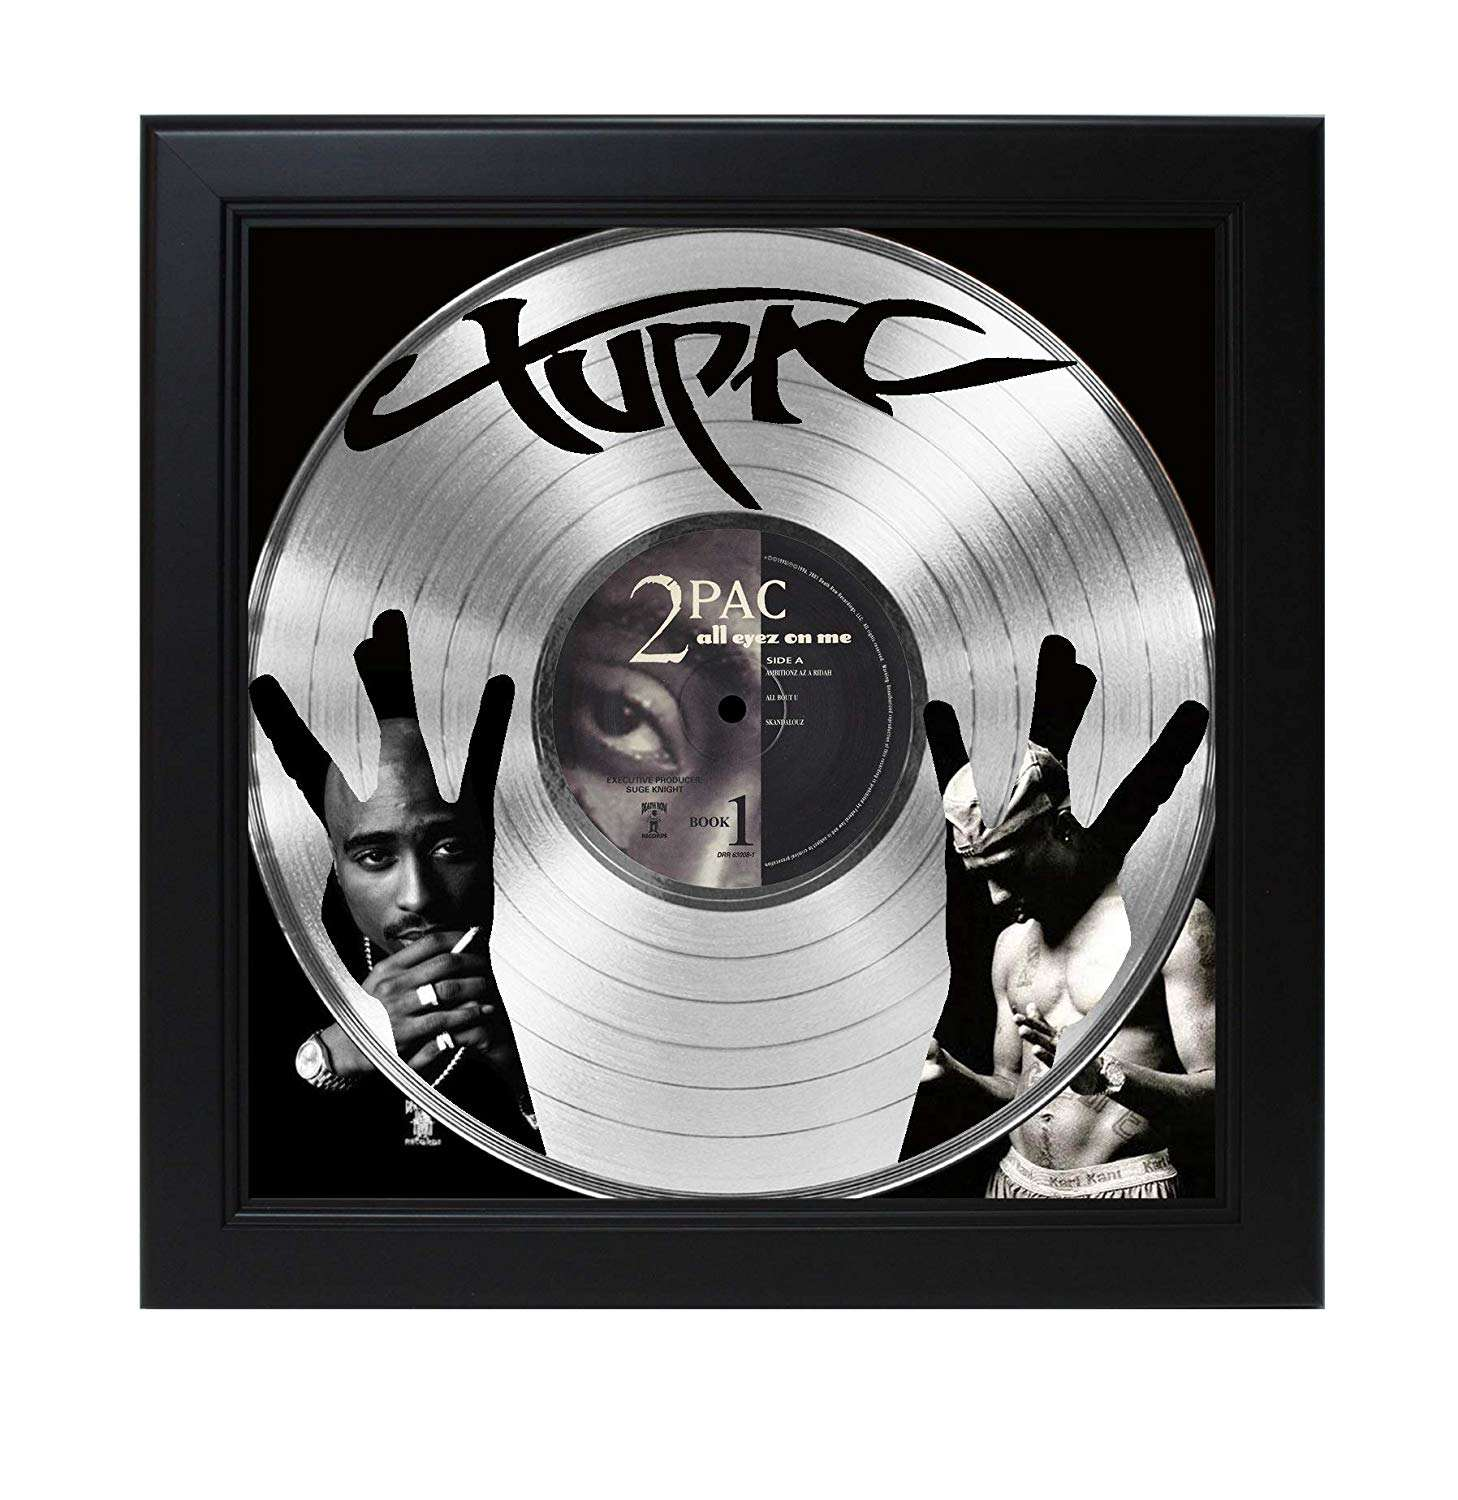 Laser Cut Gold Platinum: 2Pac Laser Cut Platinum Record With Poster Art Shadowbox